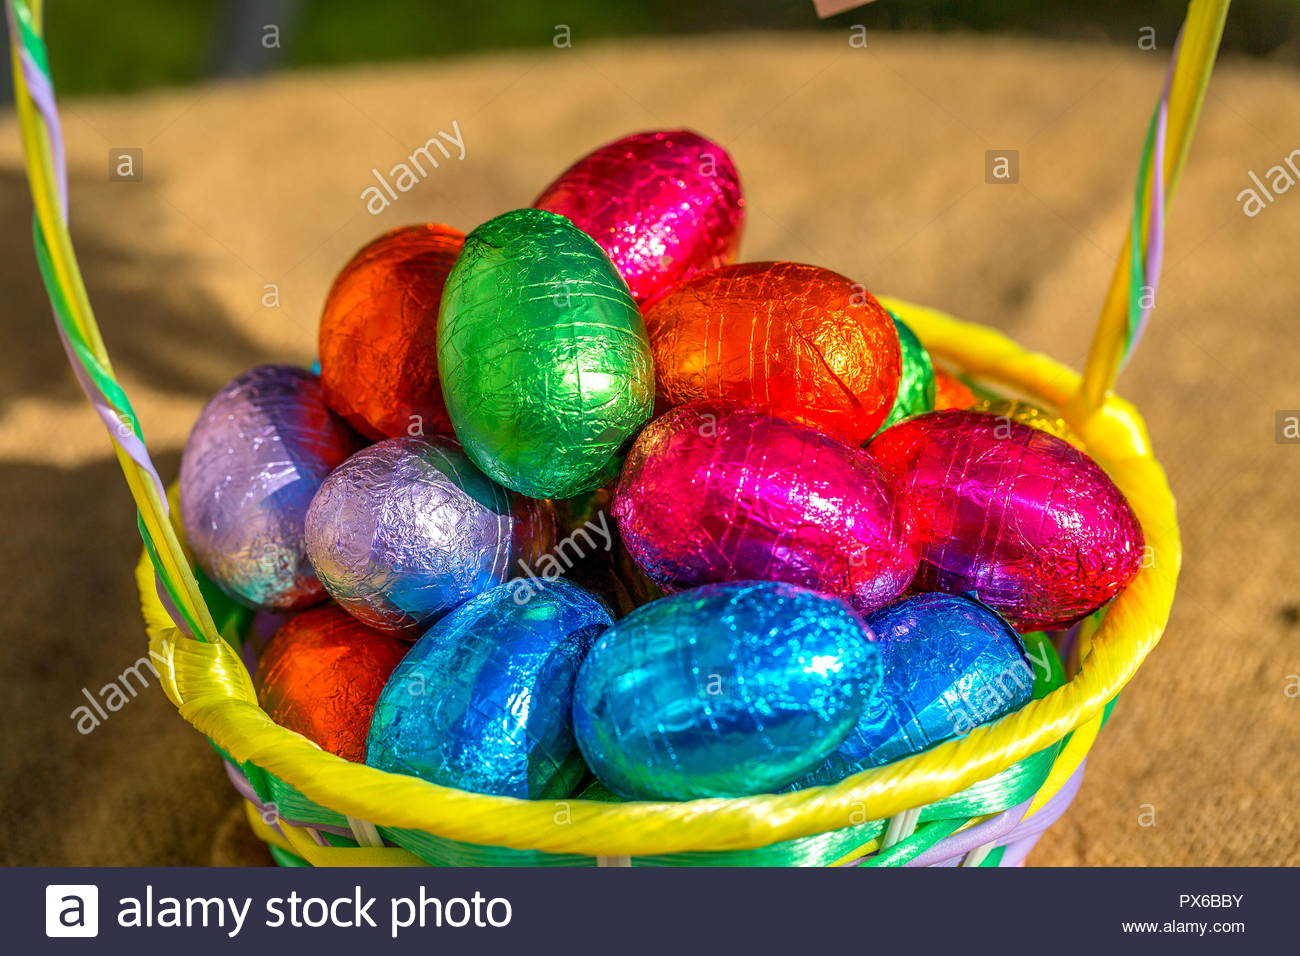 Basket of Multi-Colored Easter eggs - Stock Image